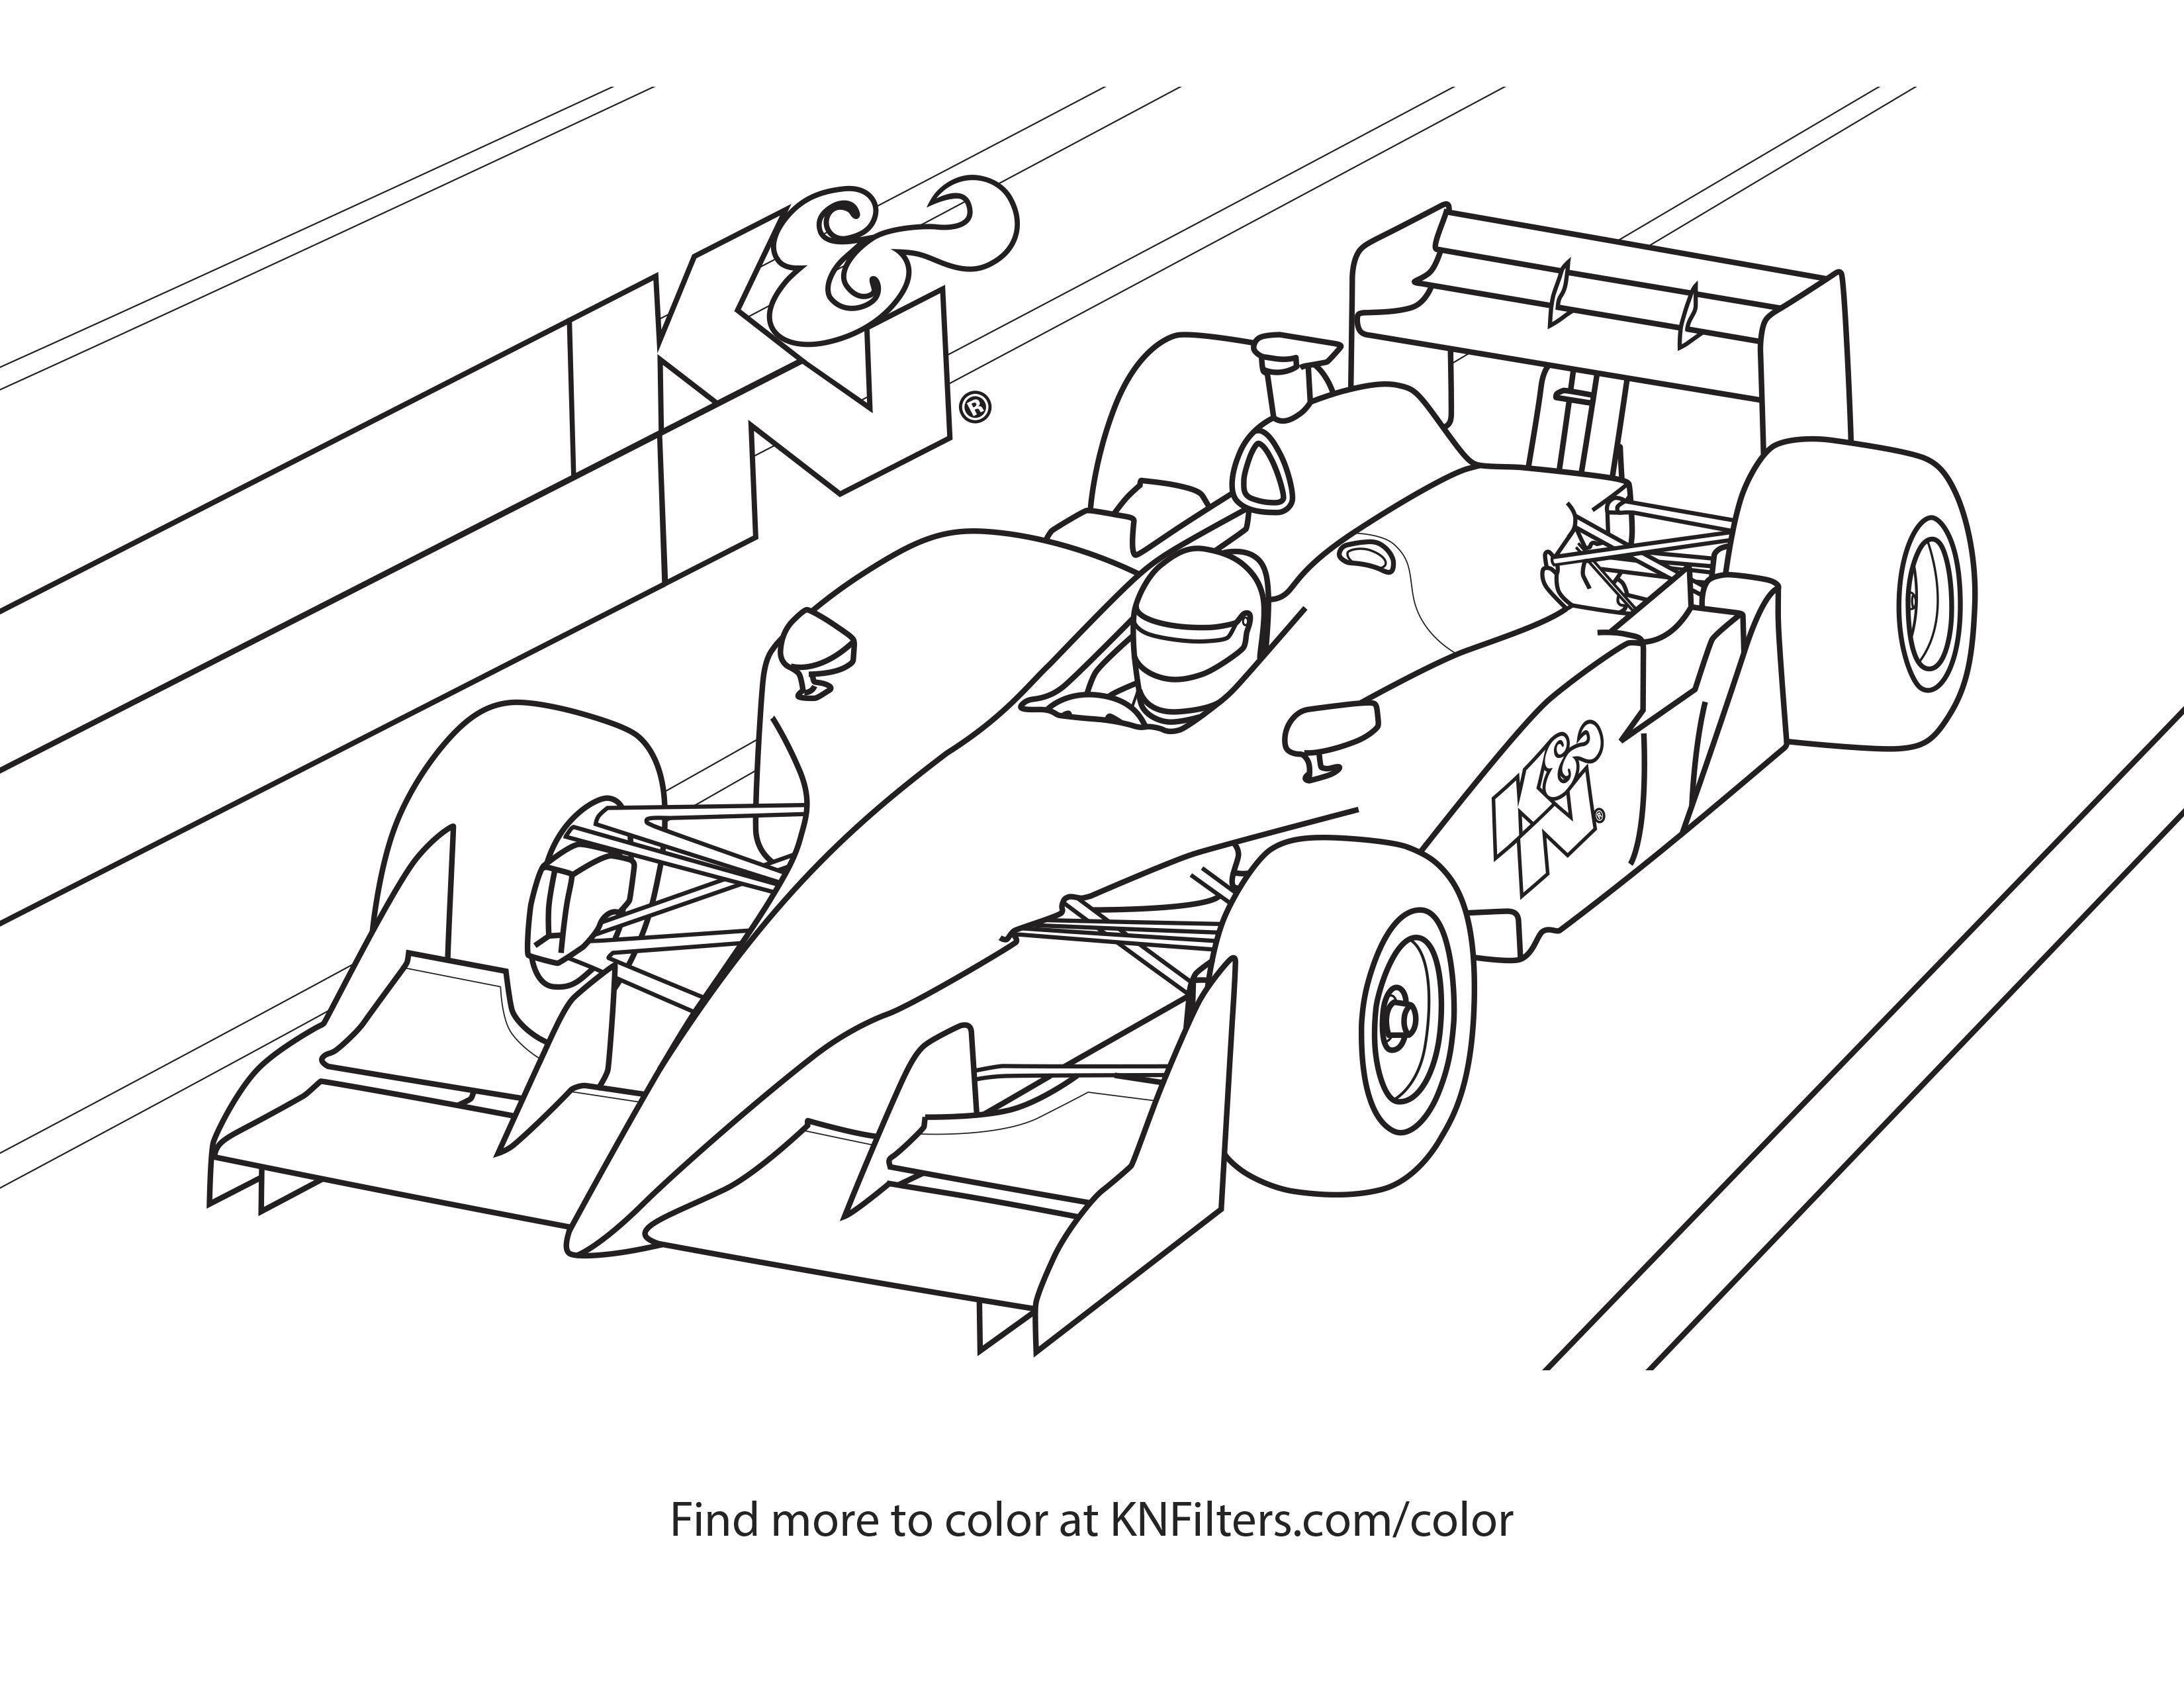 New Race Car Pictures To Color Coloring Coloringpages Coloringpagesforkids Coloringpagesf Race Car Coloring Pages Cars Coloring Pages Sports Coloring Pages